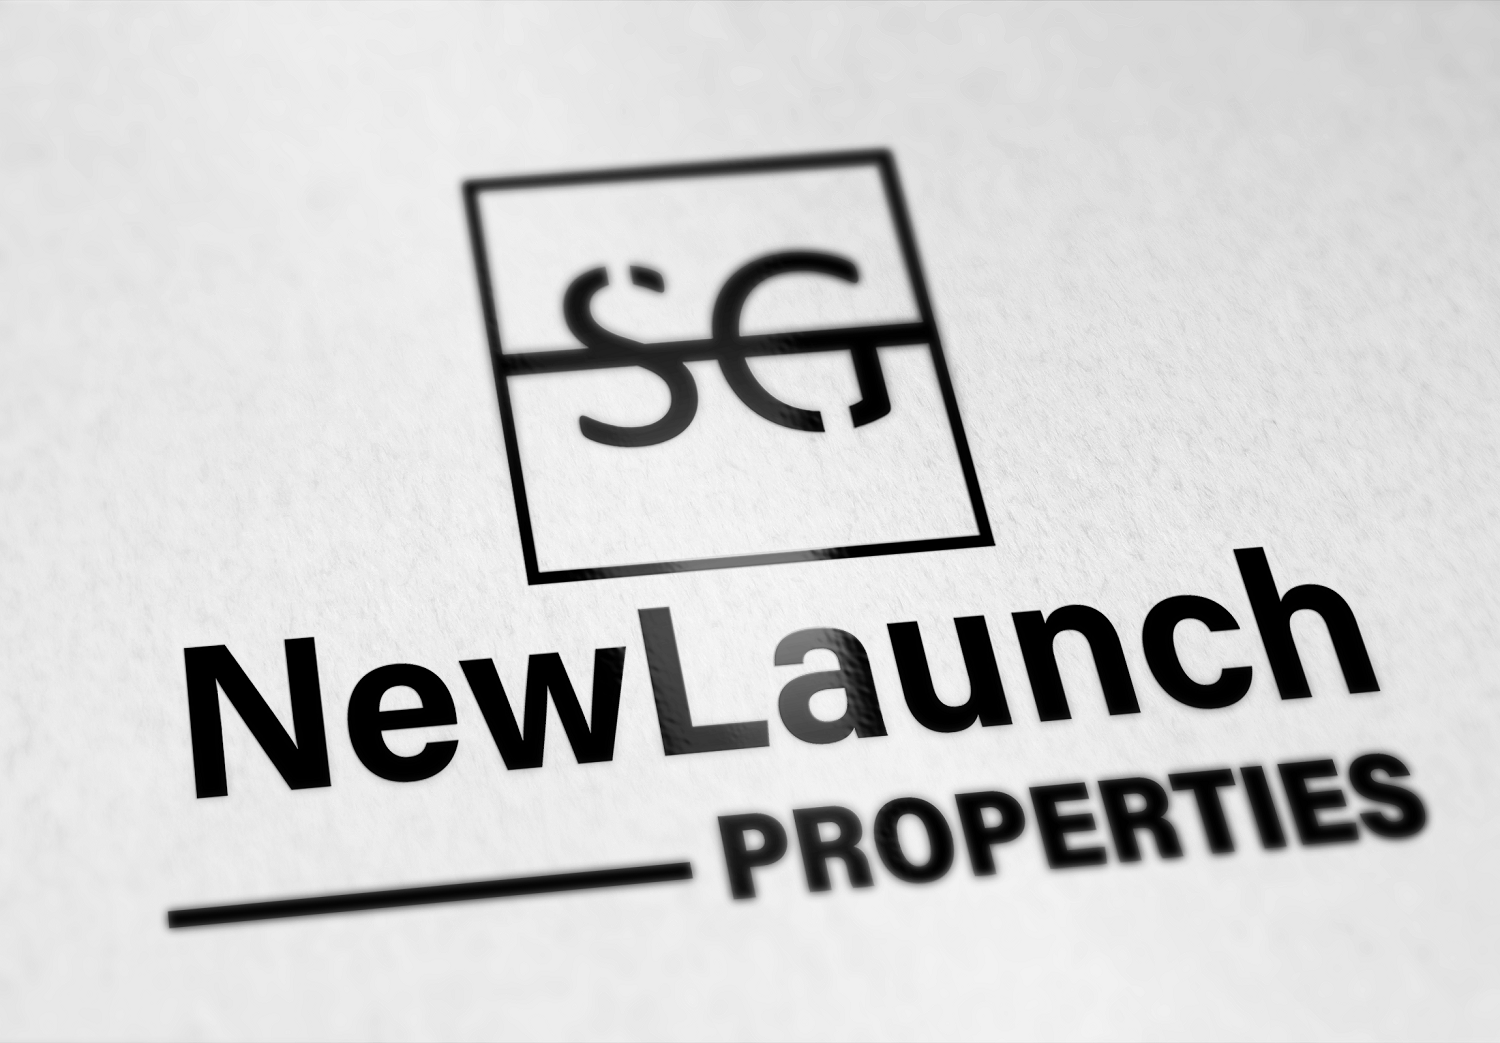 SGNewLaunch.com - Singapore New Launch Properties